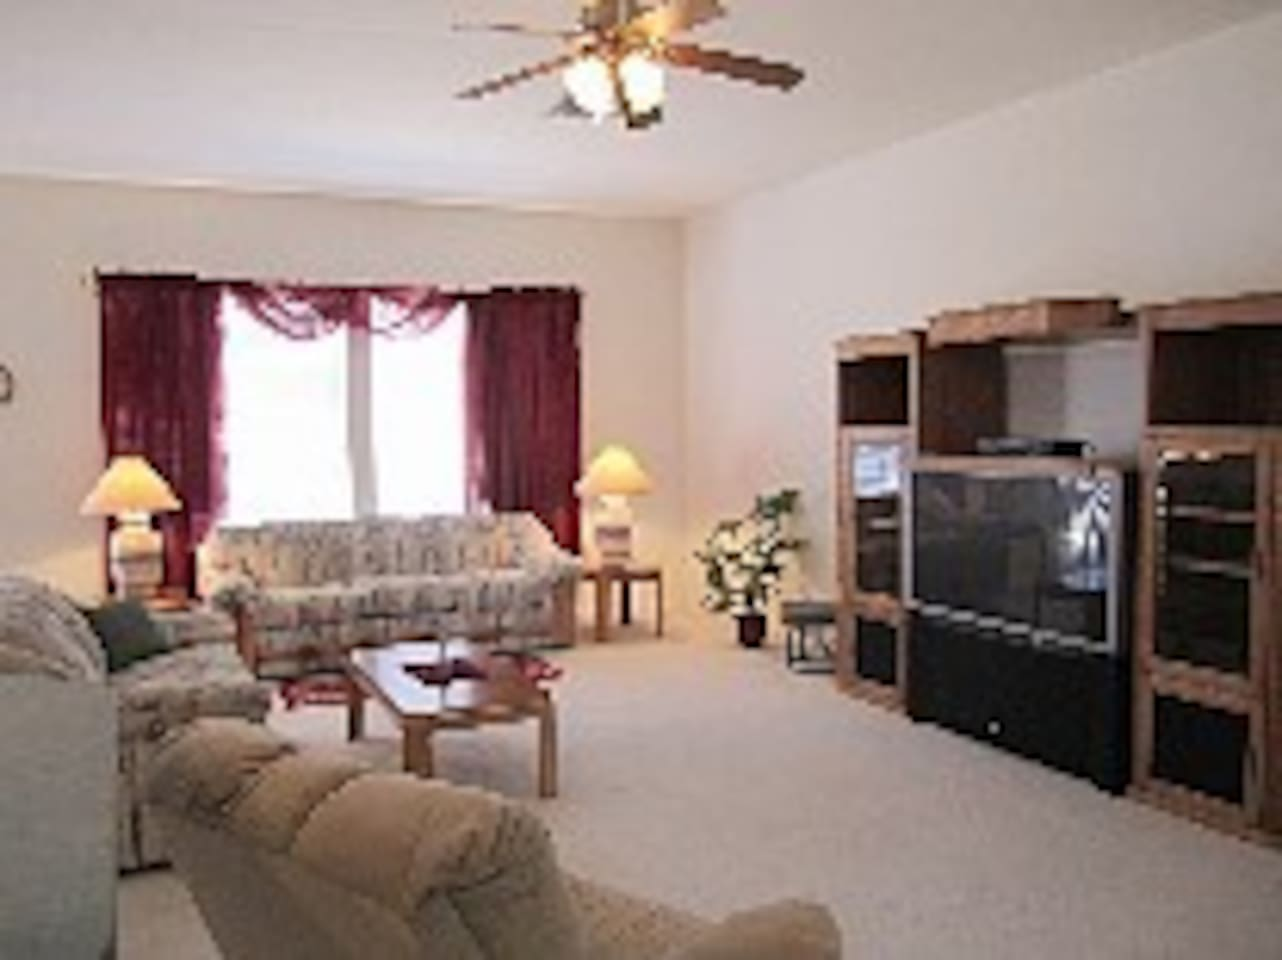 spacious, open living room